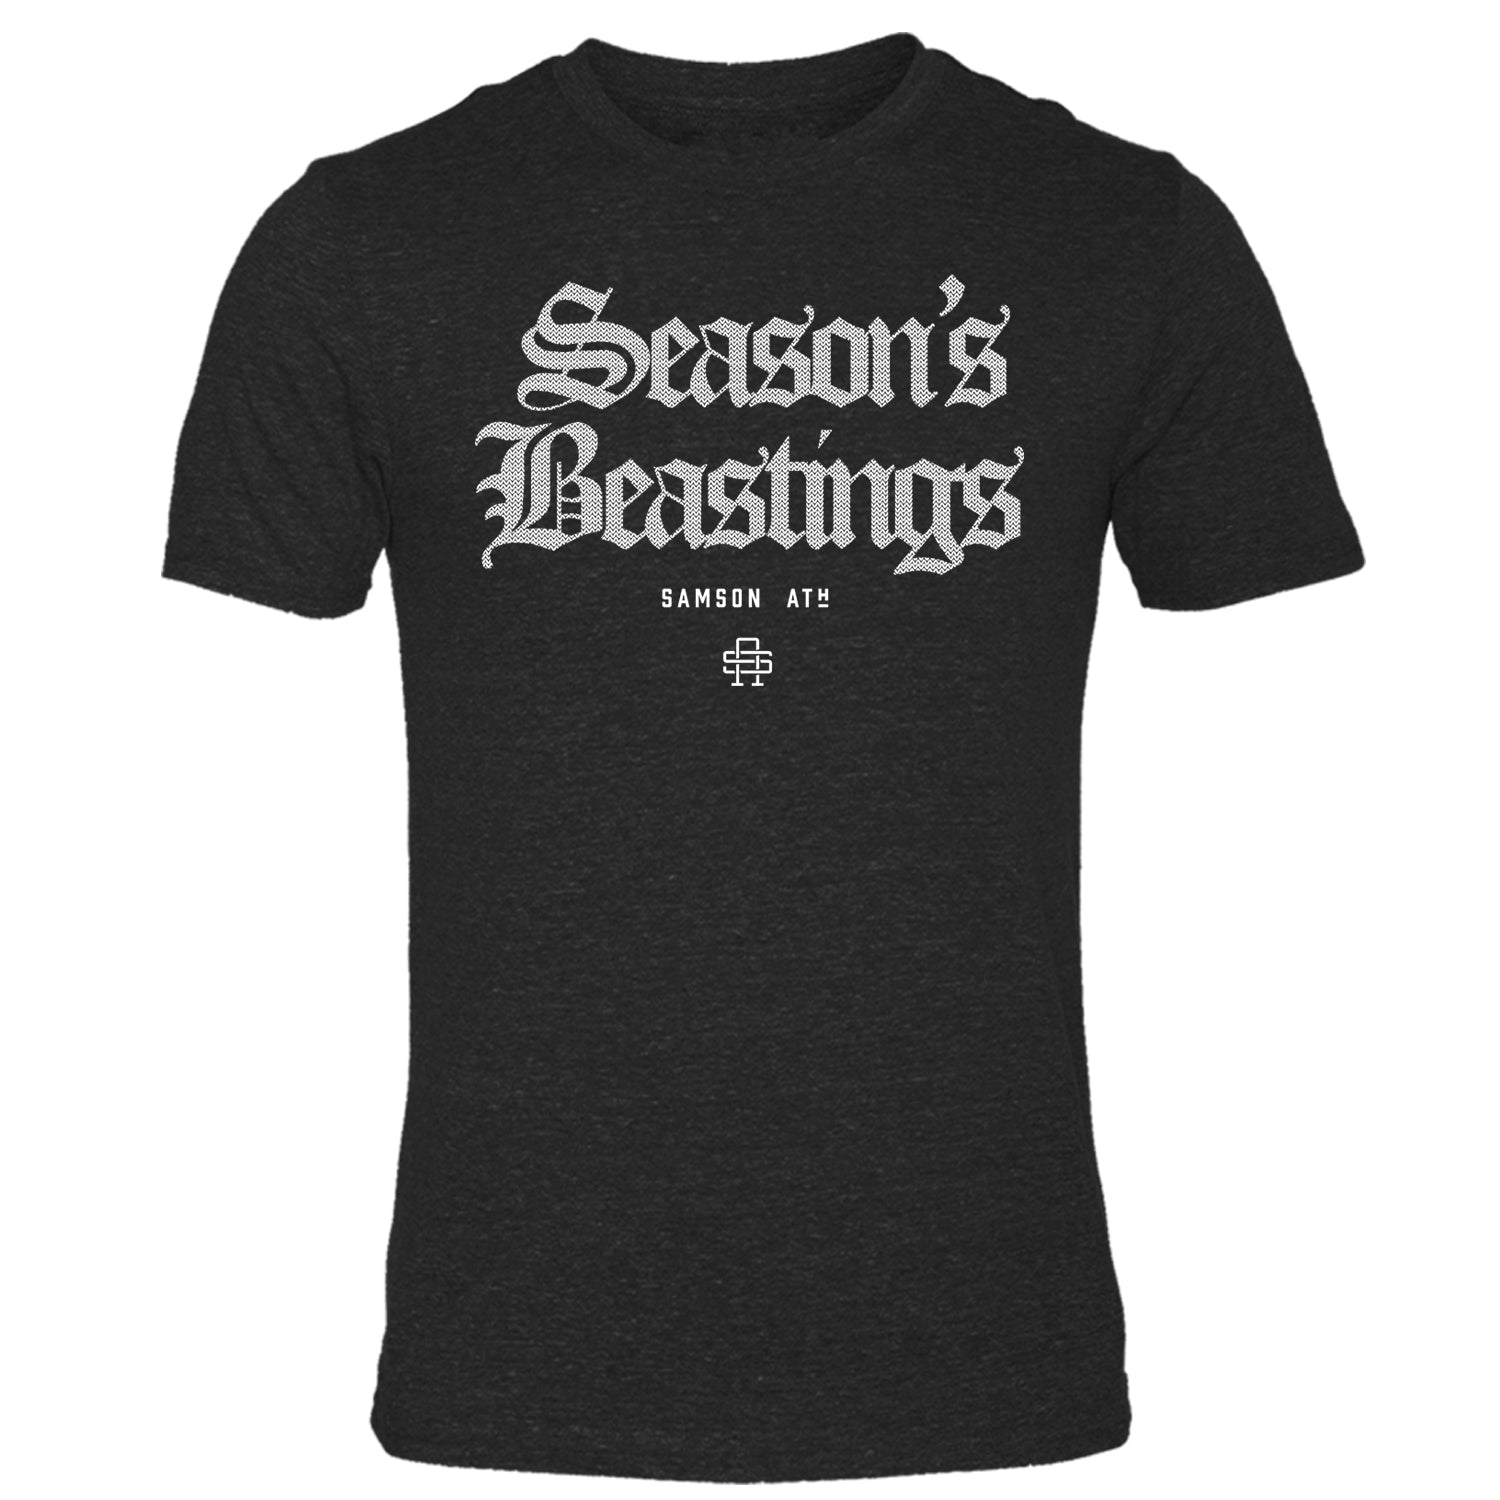 Season's Beastings Christmas Gym T-Shirt